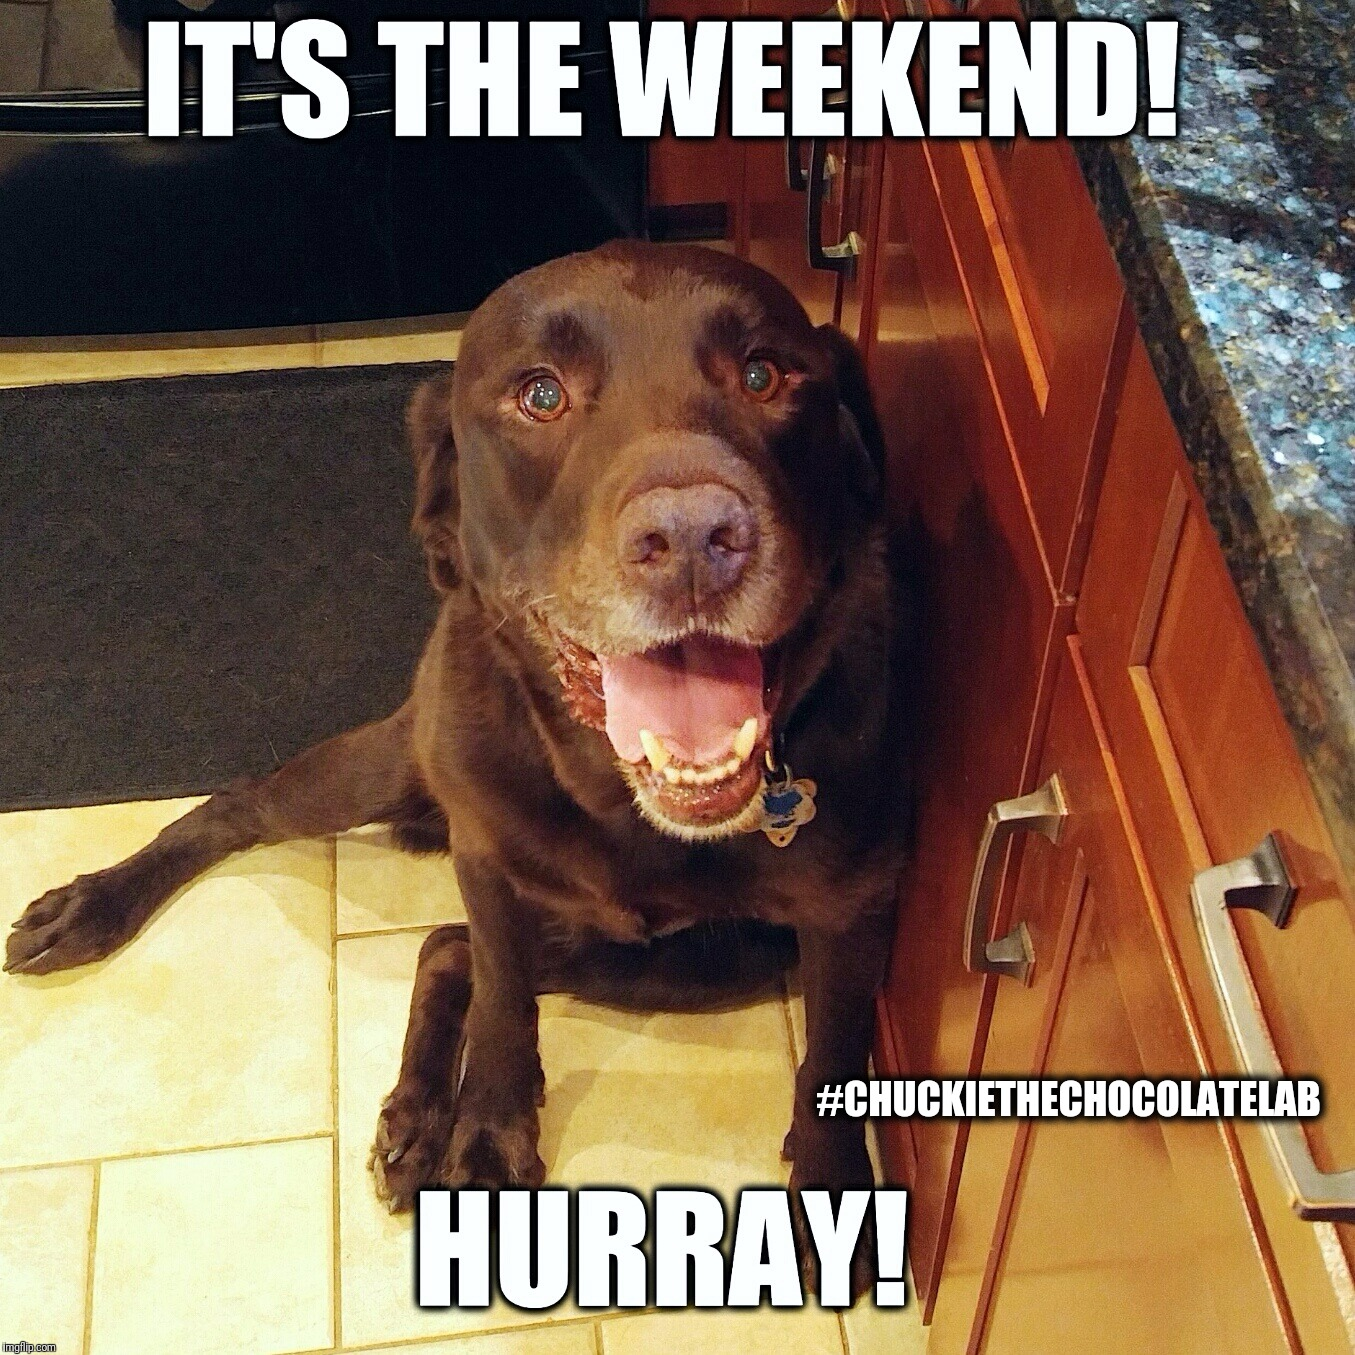 It's the weekend!  | #CHUCKIETHECHOCOLATELAB | image tagged in chuckie the chocolate lab,weekend,memes,tgif,labrador,dogs | made w/ Imgflip meme maker